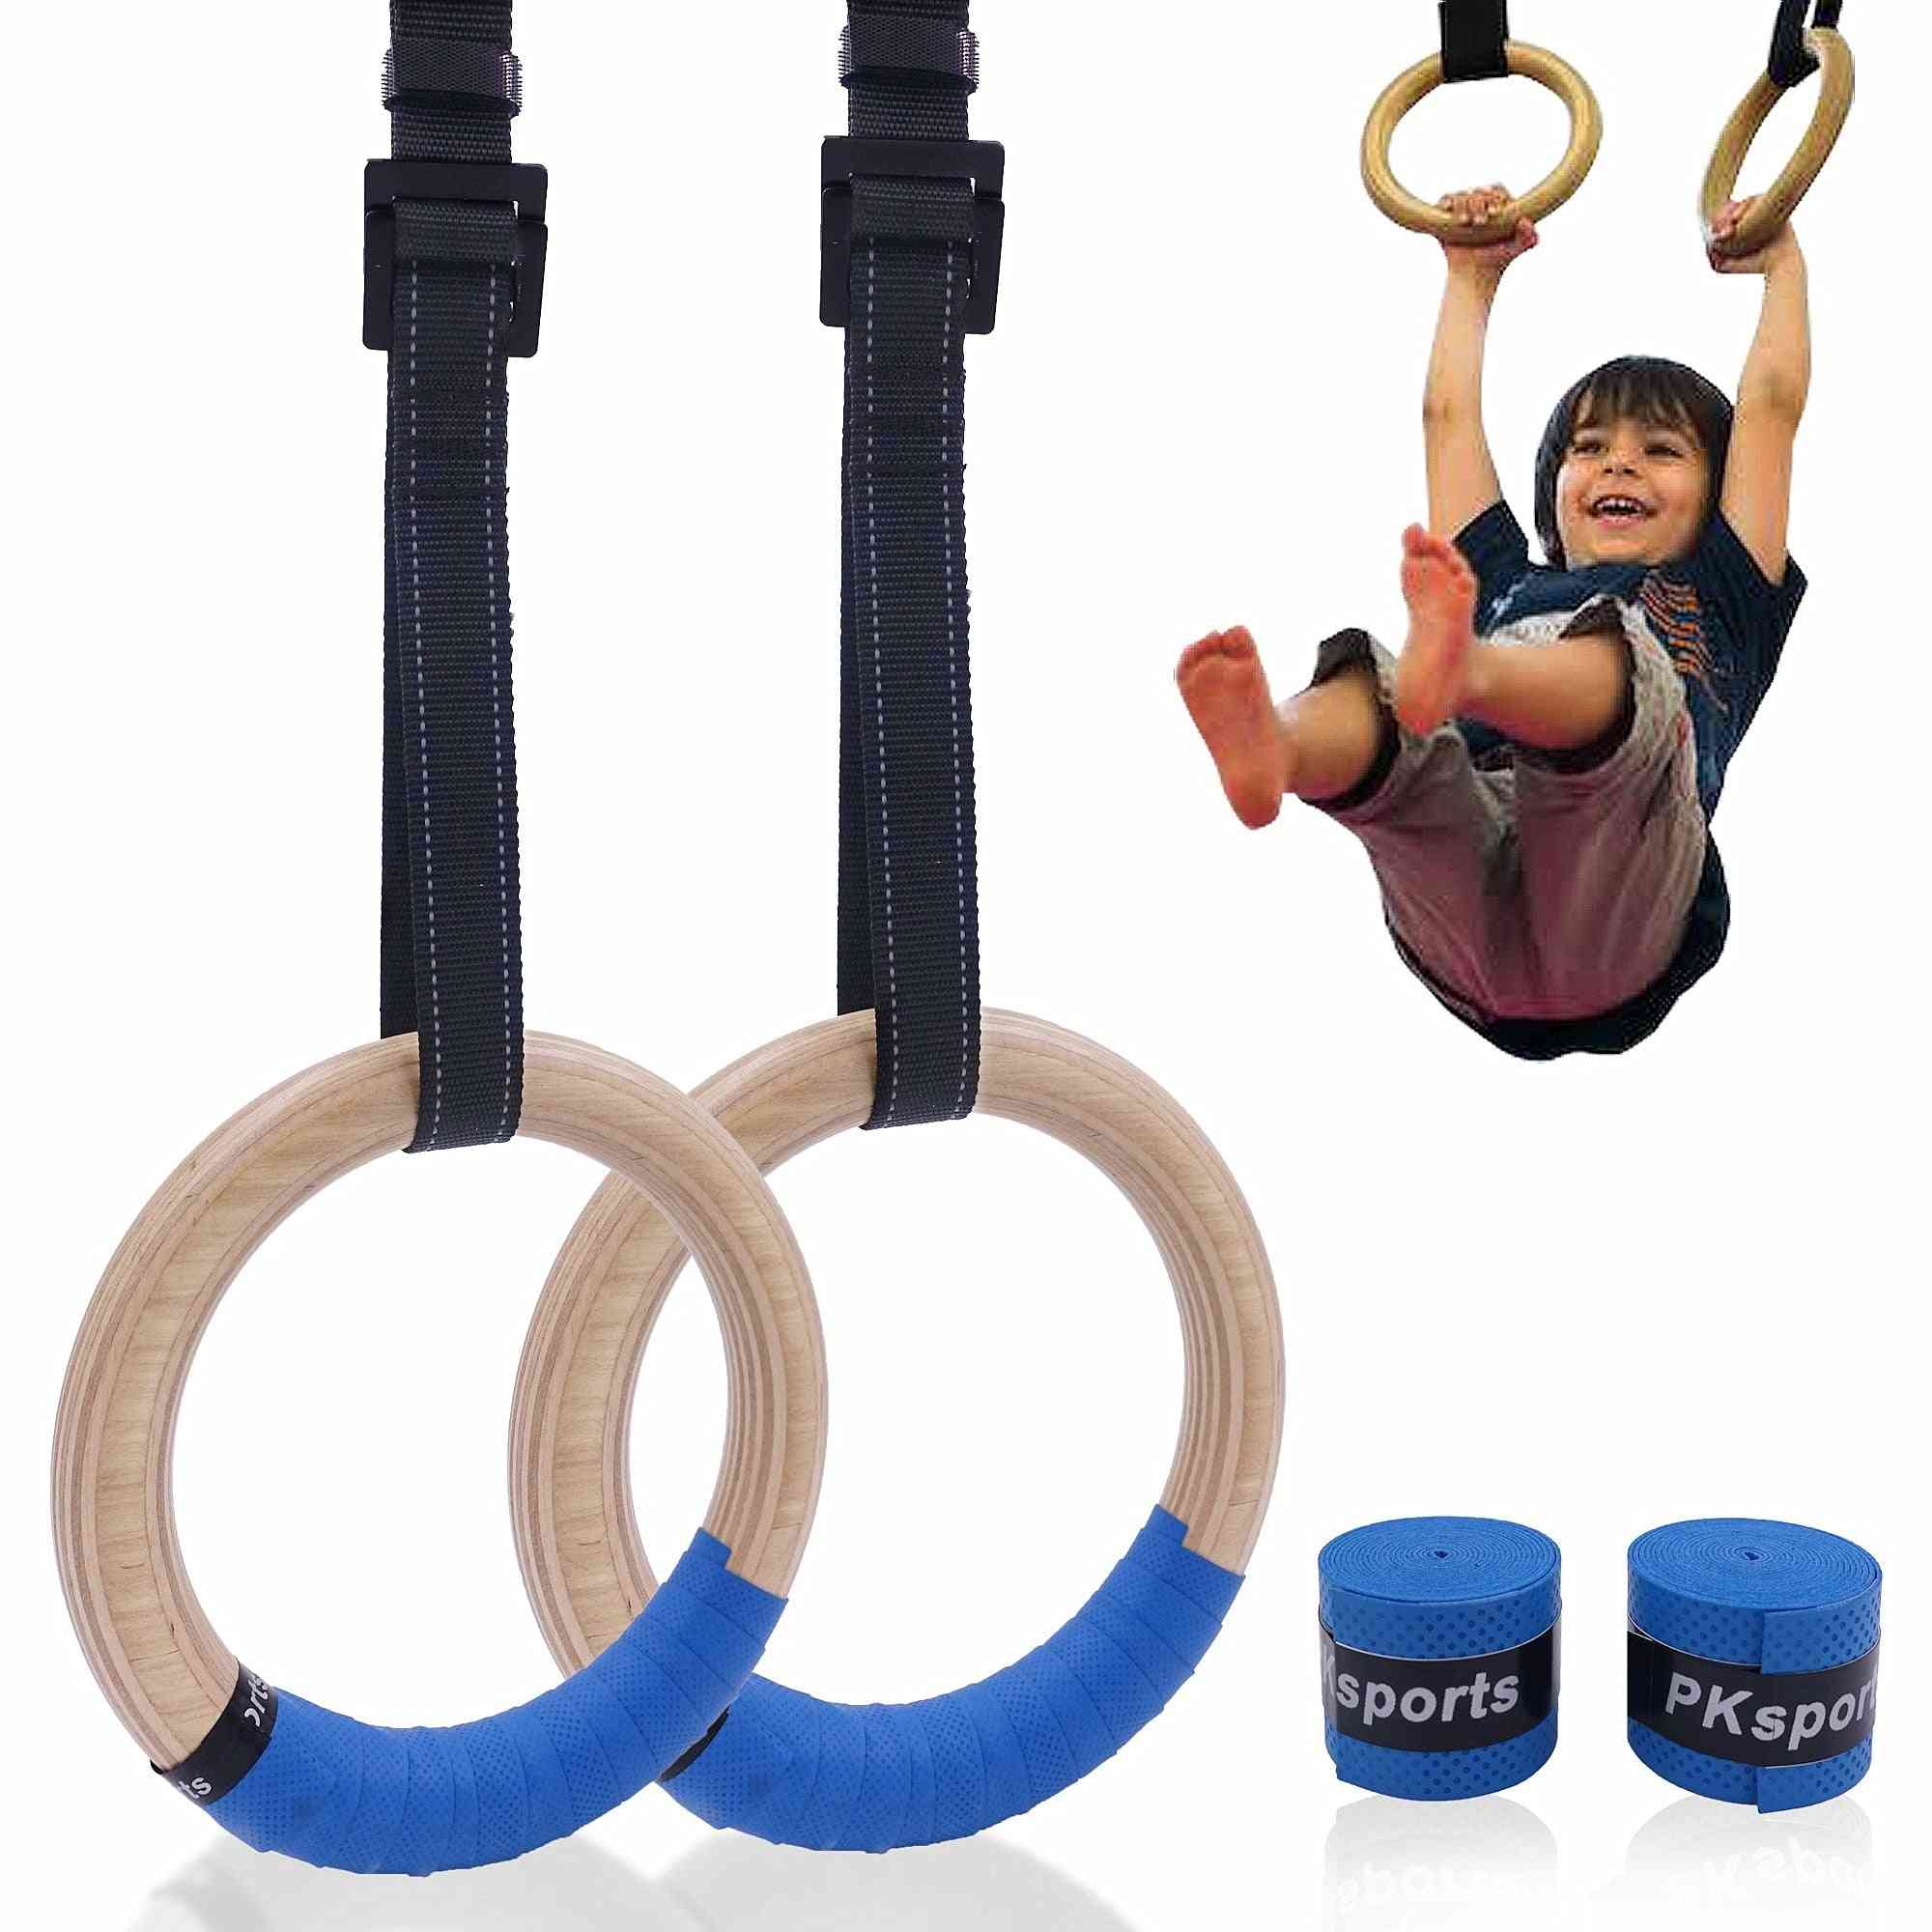 Wooden Gymnastic Rings For Kids With Adjustable Straps, Buckles